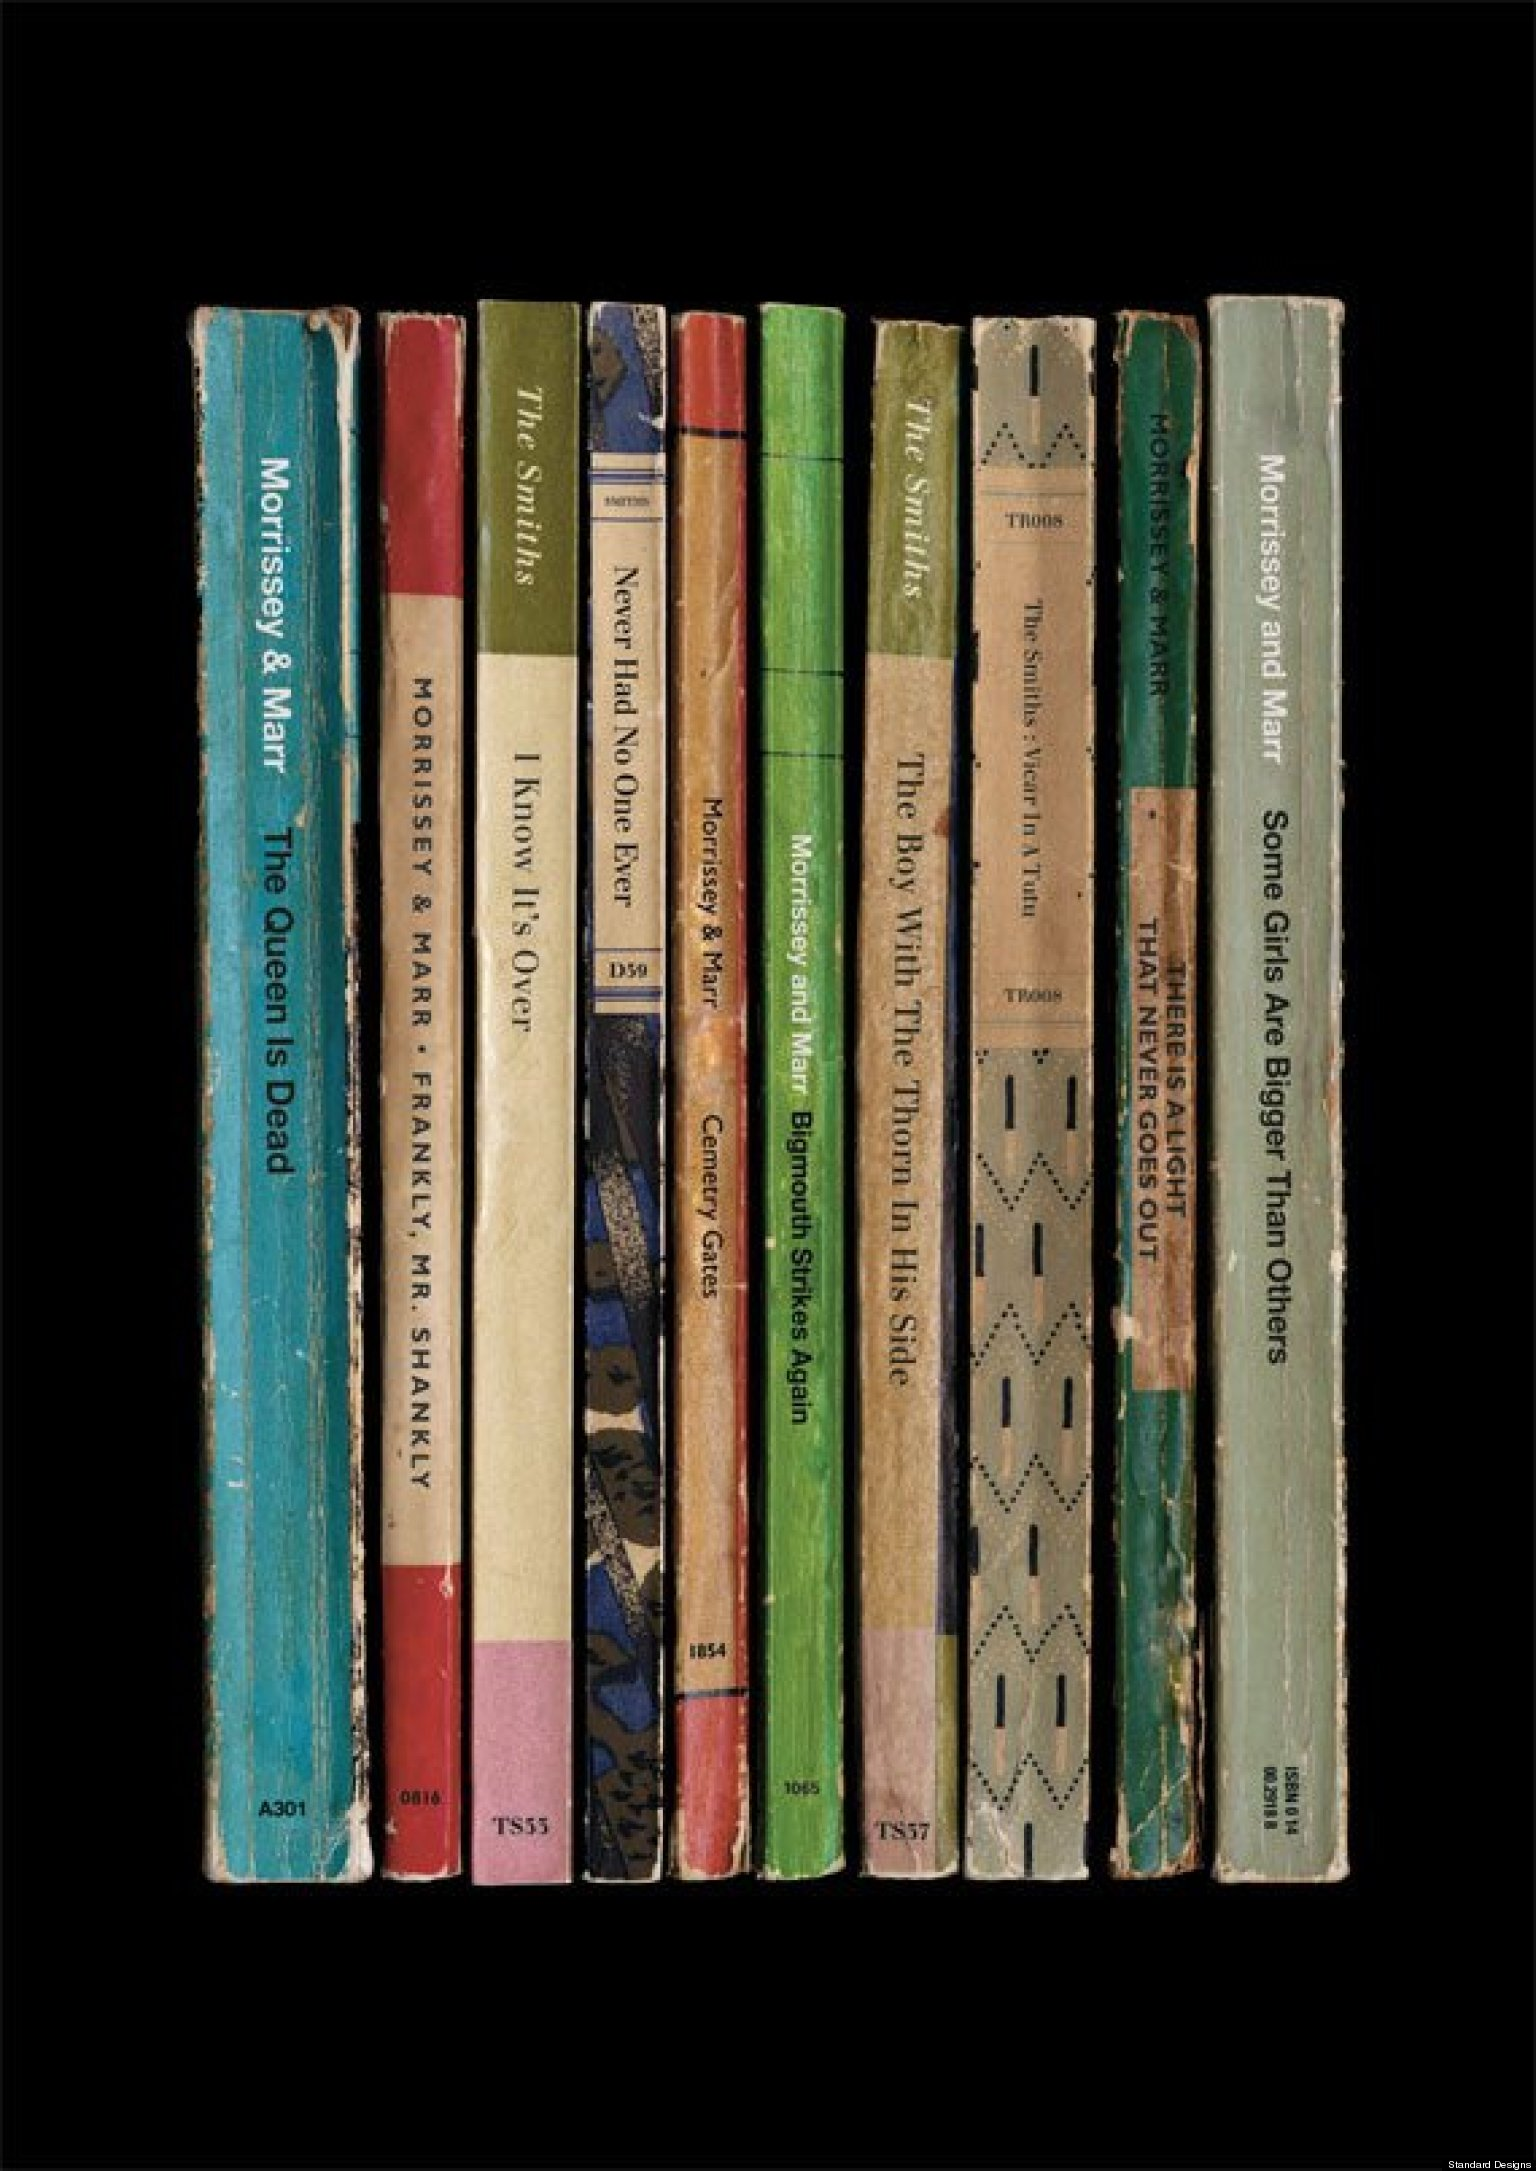 the smiths albums reimagined as vintage books  pictures